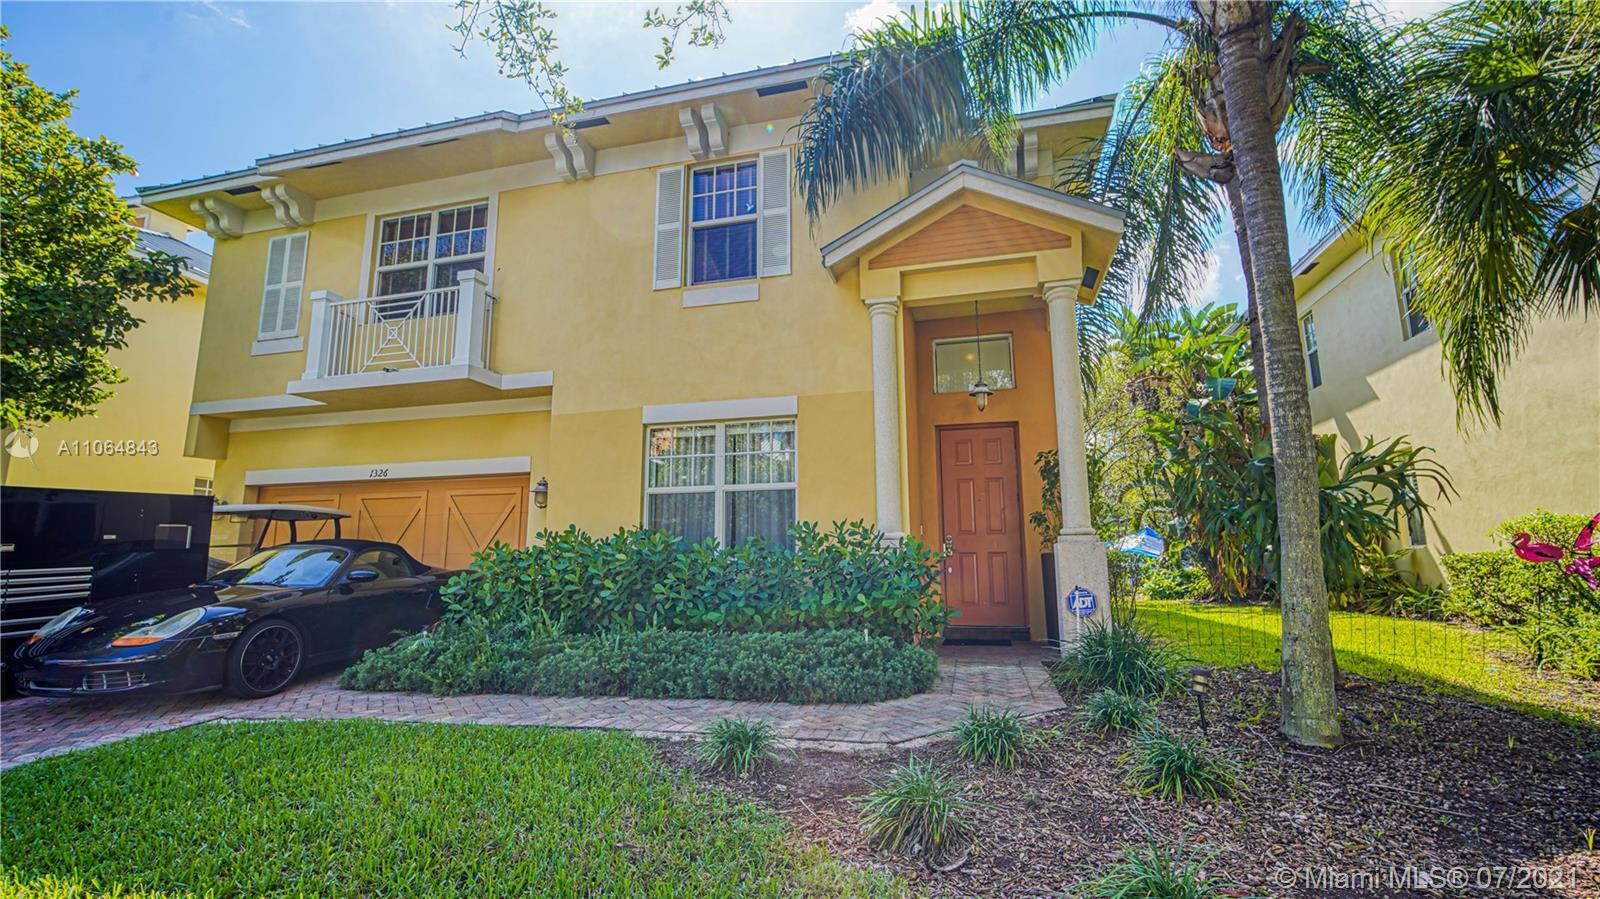 Absolutely gorgeous house, 4 bedroom 2 and a half baths, shows like a model. High ceilings, open flo